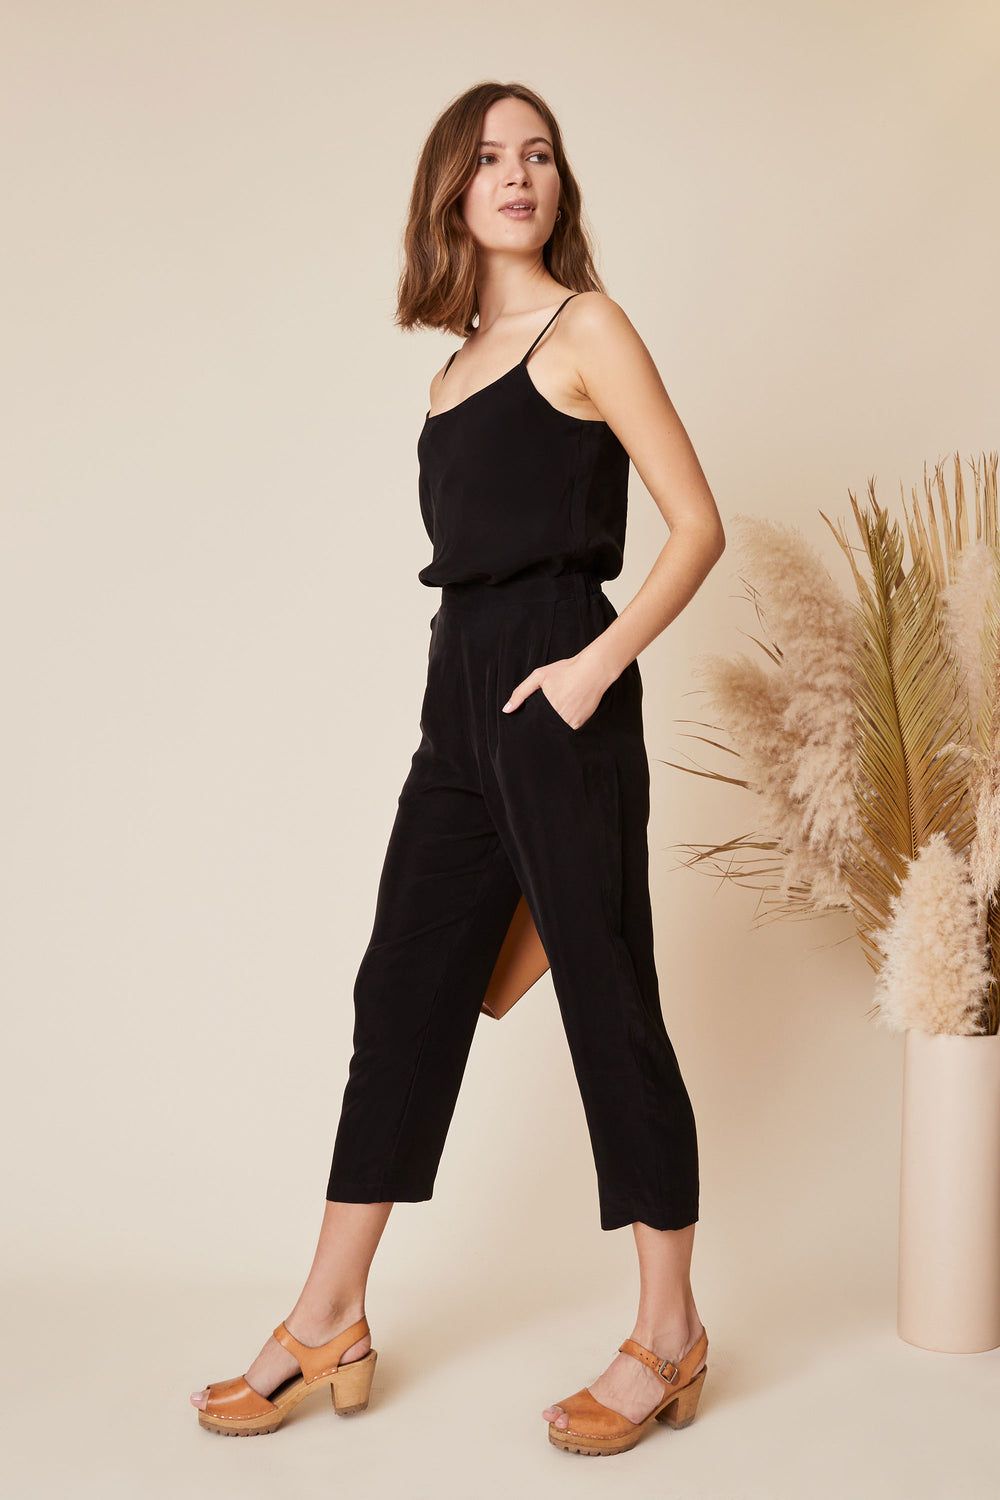 Rowen Pant in Black - Whimsy & Row